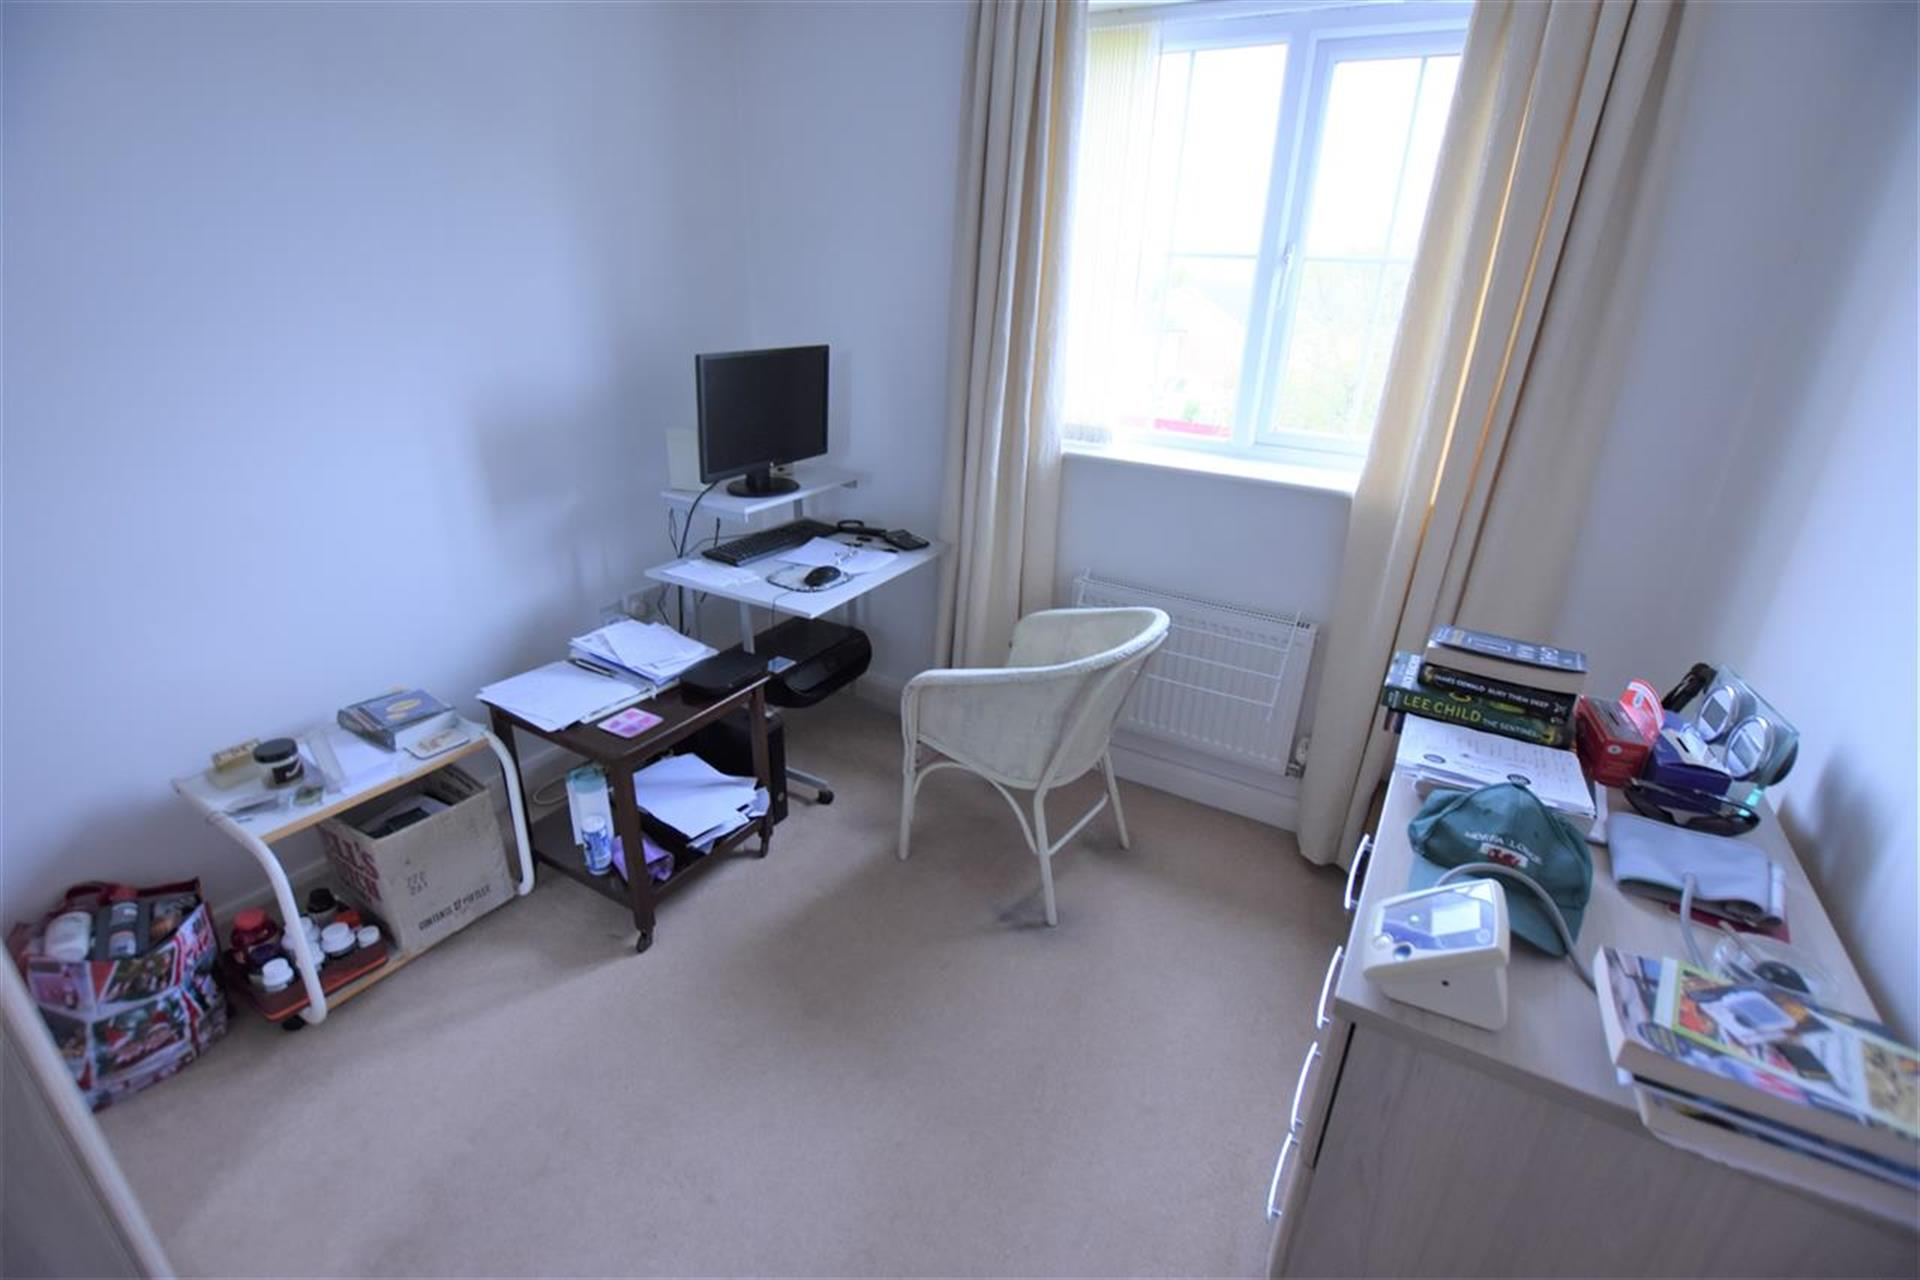 2 Bedroom Apartment Flat / Apartment For Sale - Second Bedroom